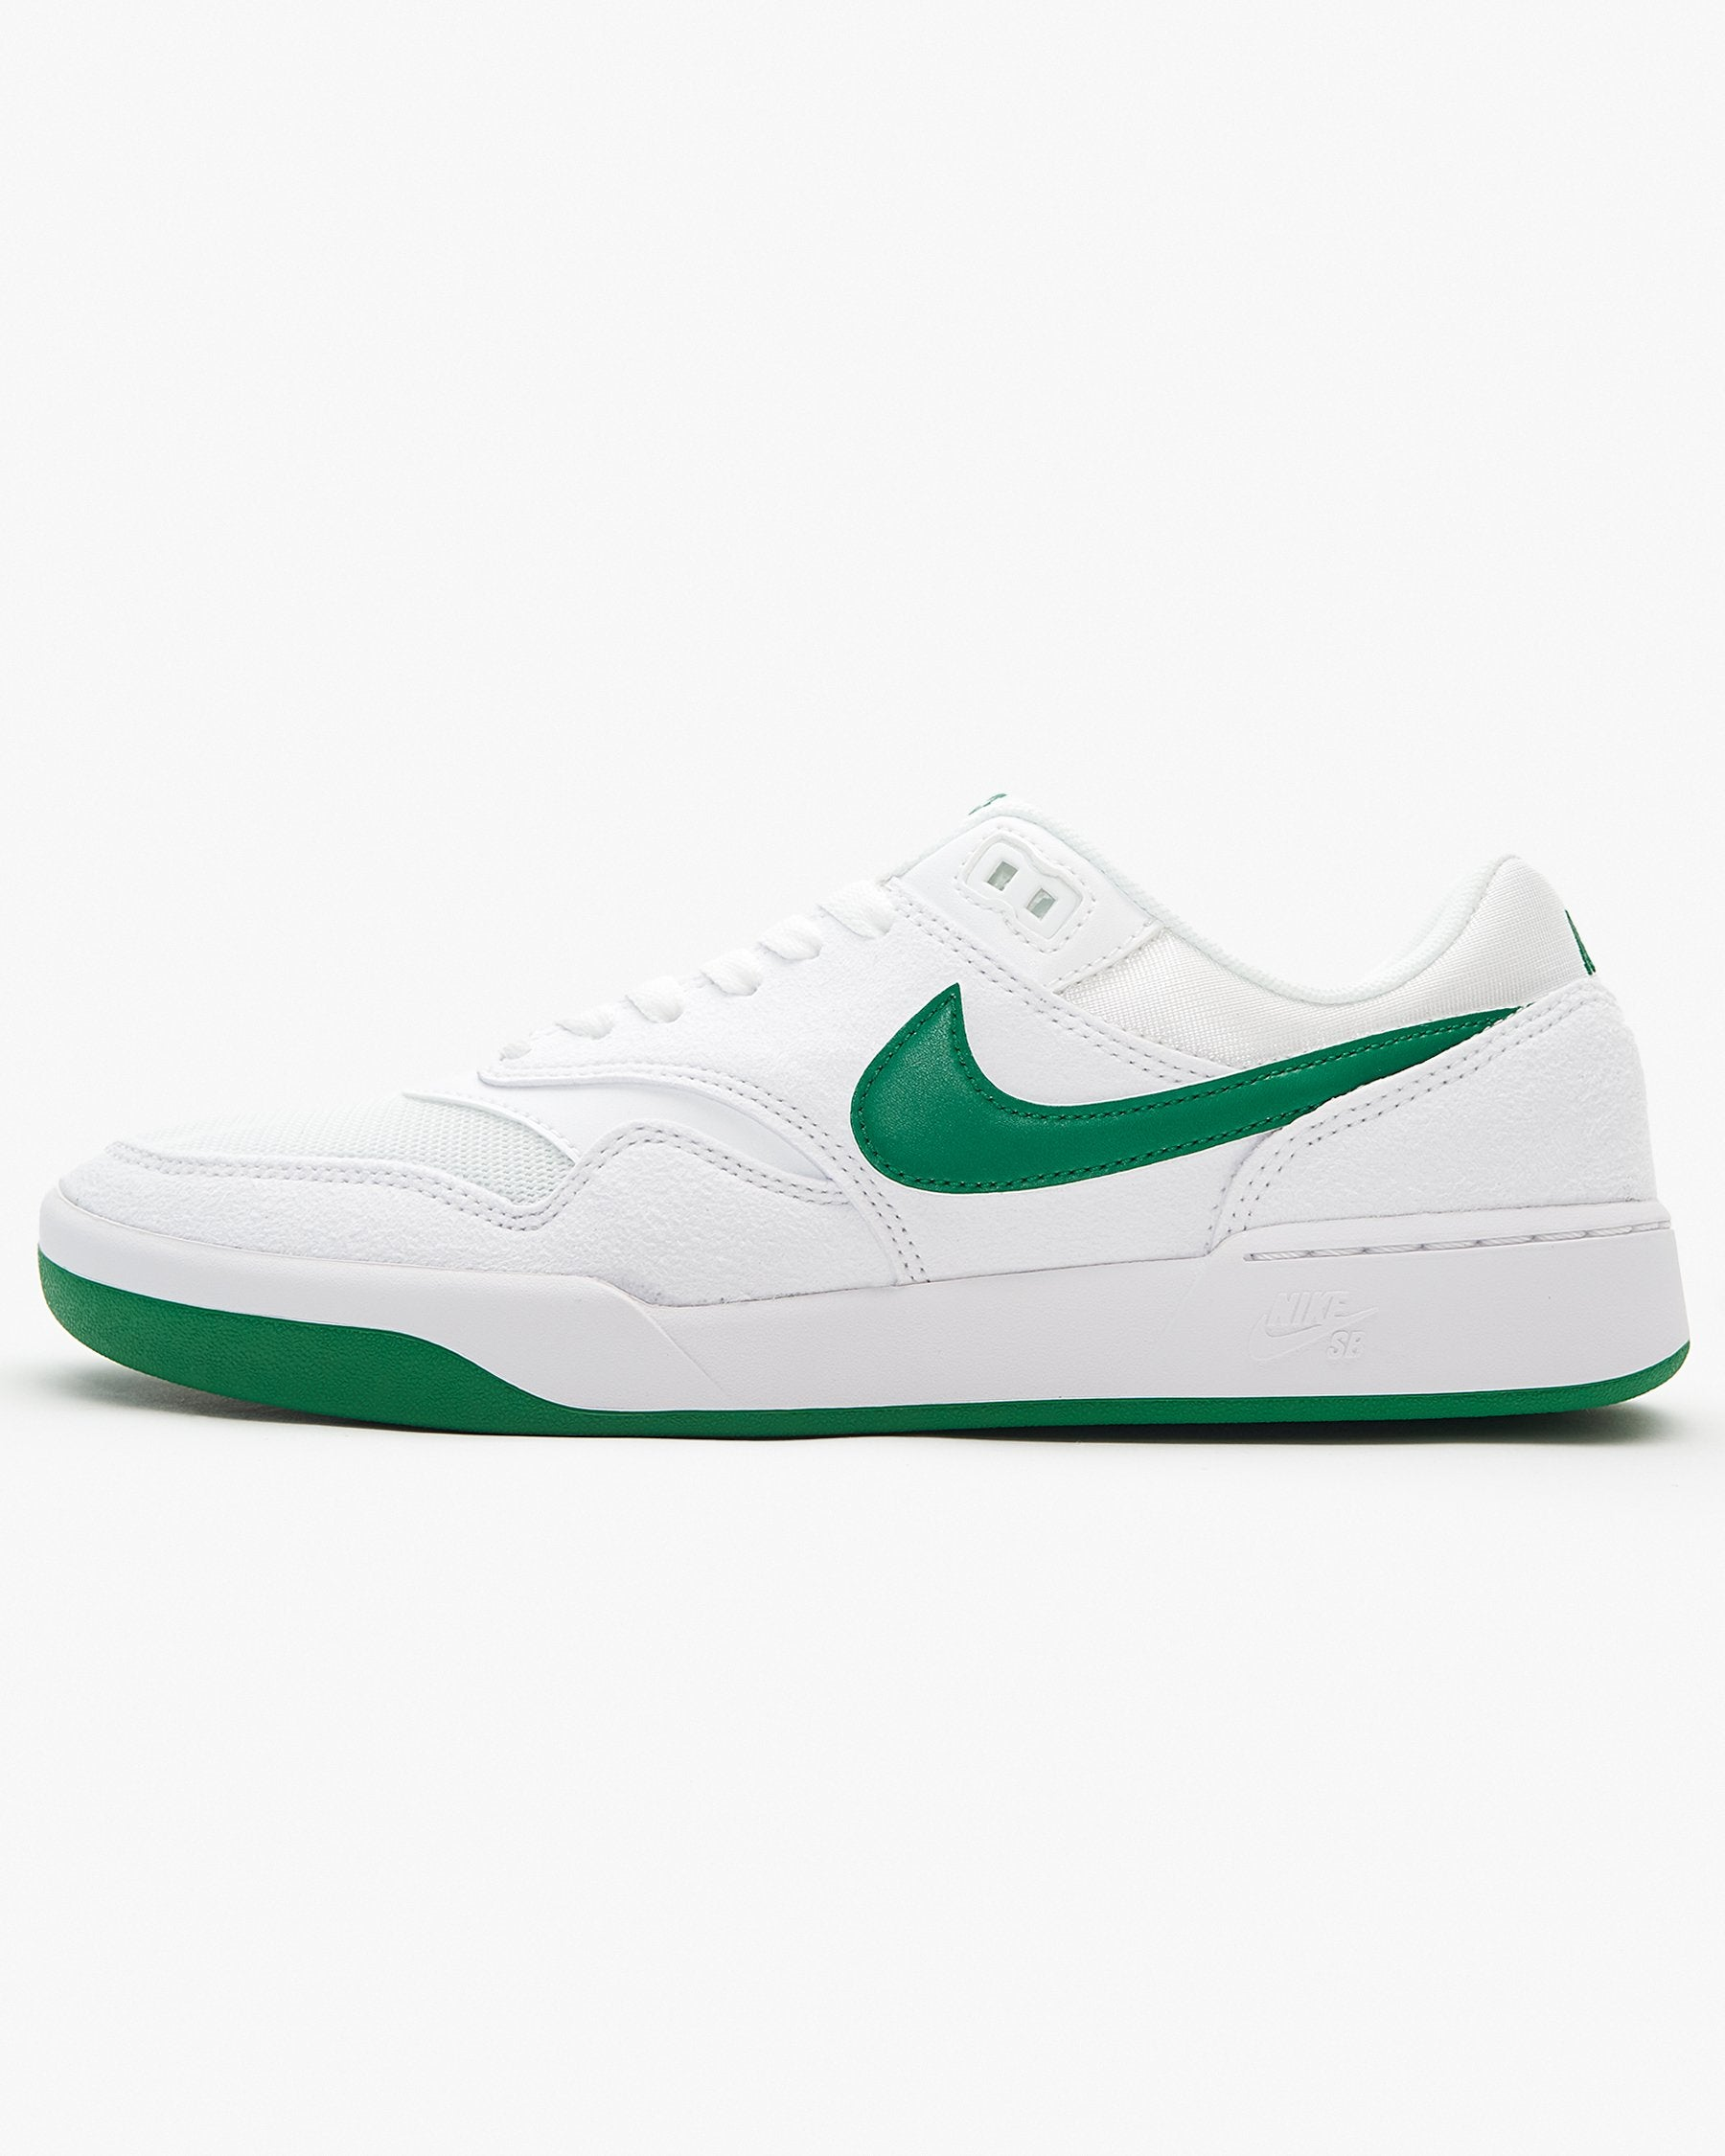 Nike SB GTS Return - White / Pine Green UK 7 CD49901017 194276065686 Nike SB Trainers